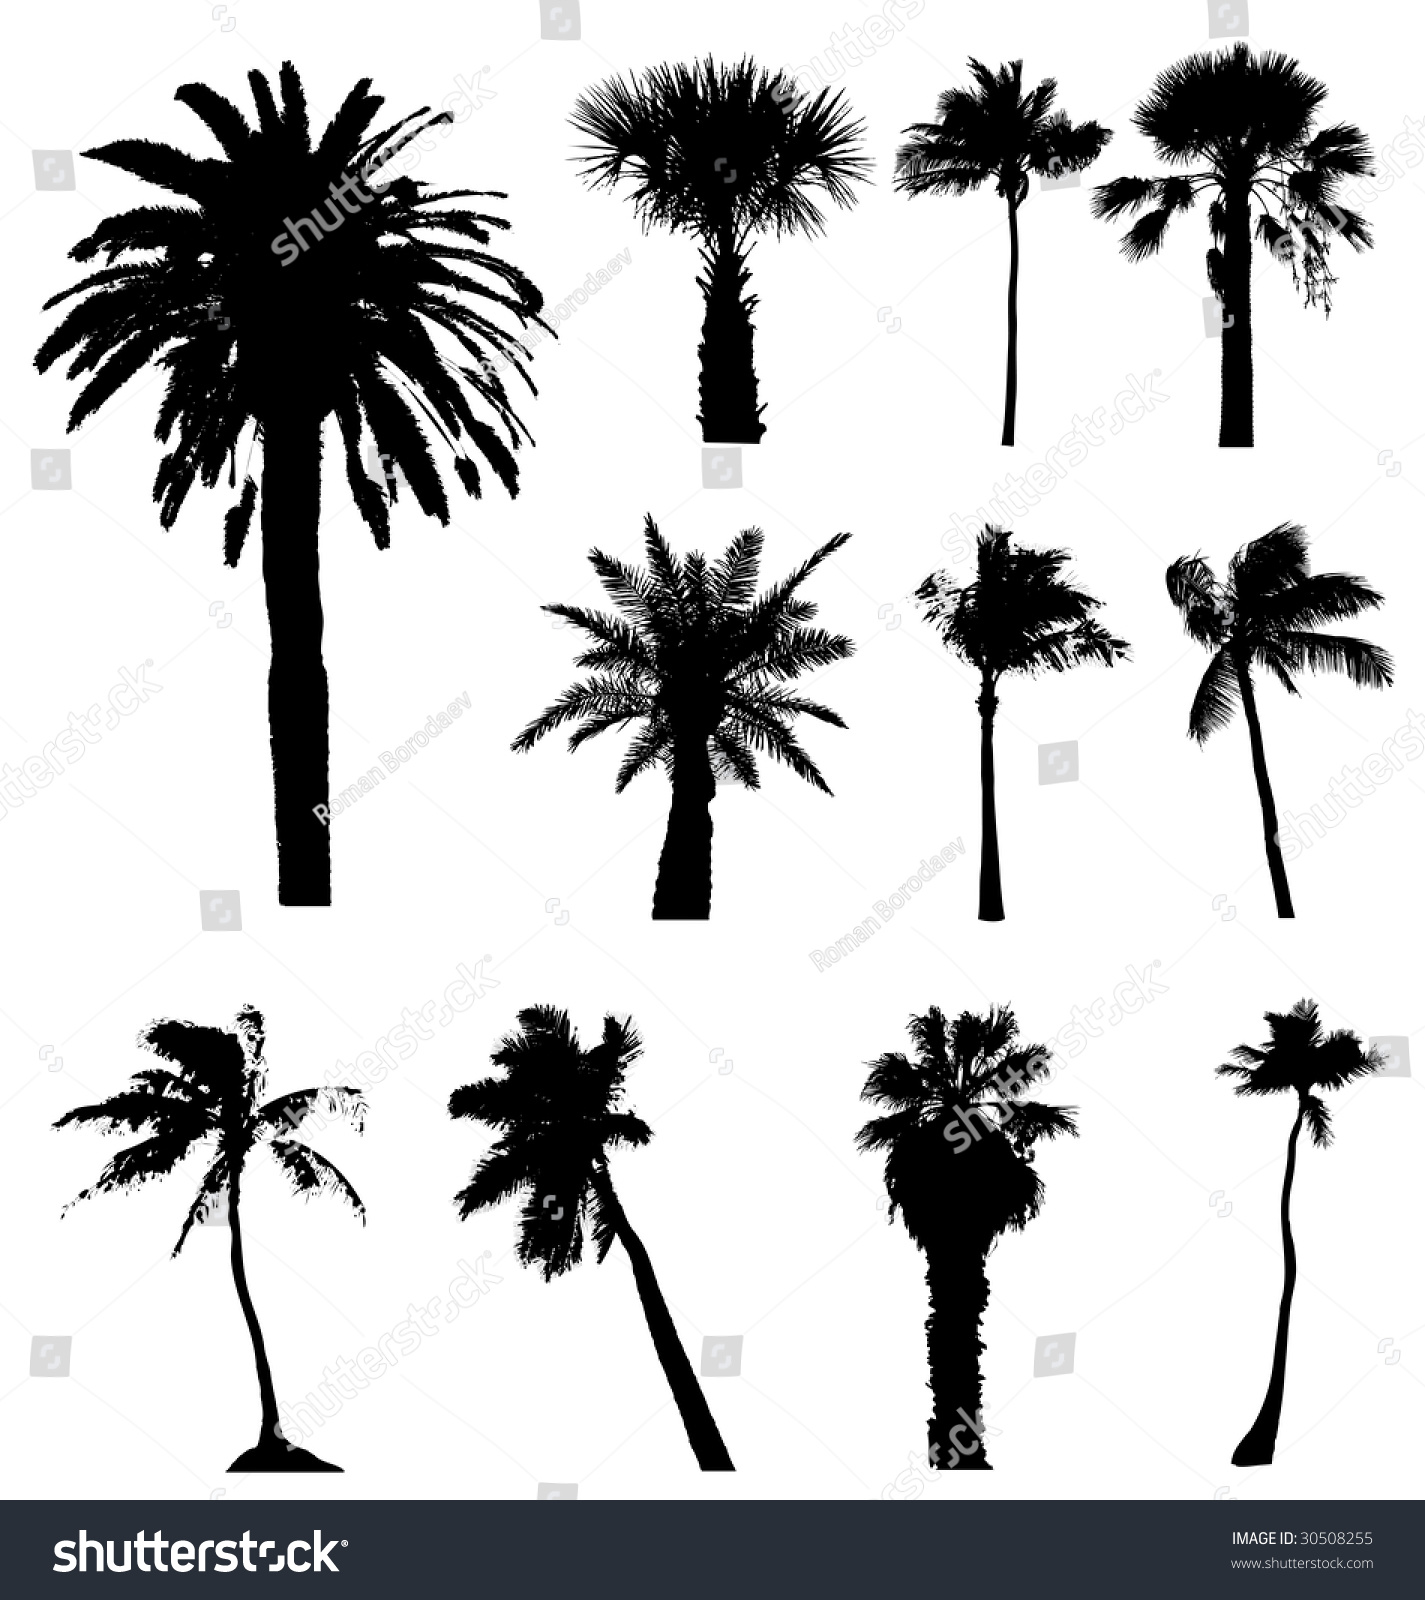 Vector Palm Tree Palmtree Silhouette Set Stock Vector 30508255 Shutterstock